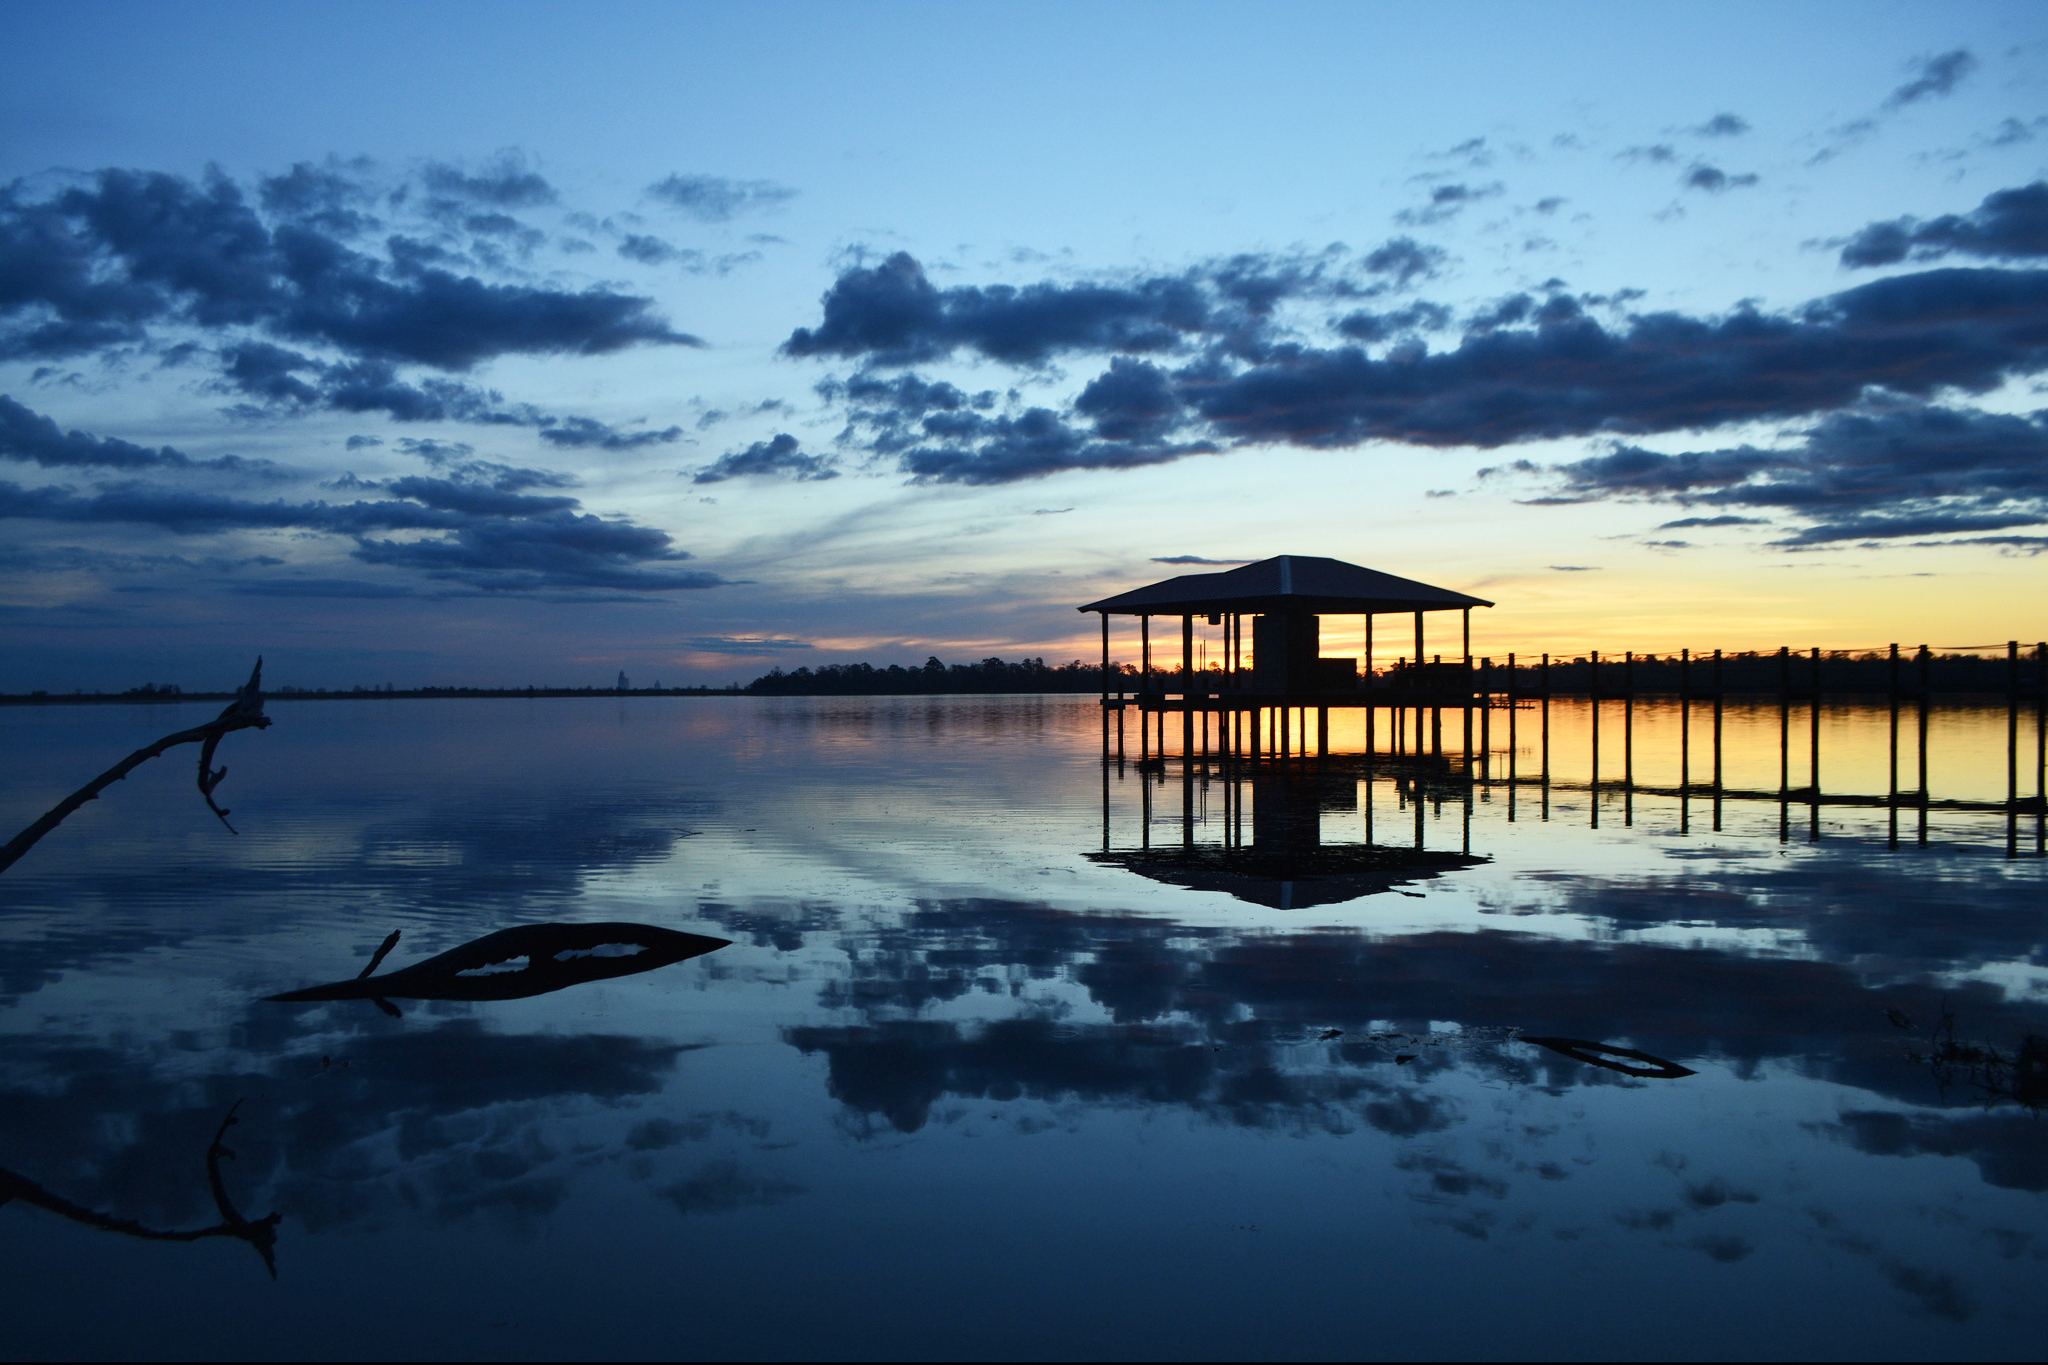 The sun sets across a small bay behind the coastline. A dock and shelter sit above the water in the foreground.